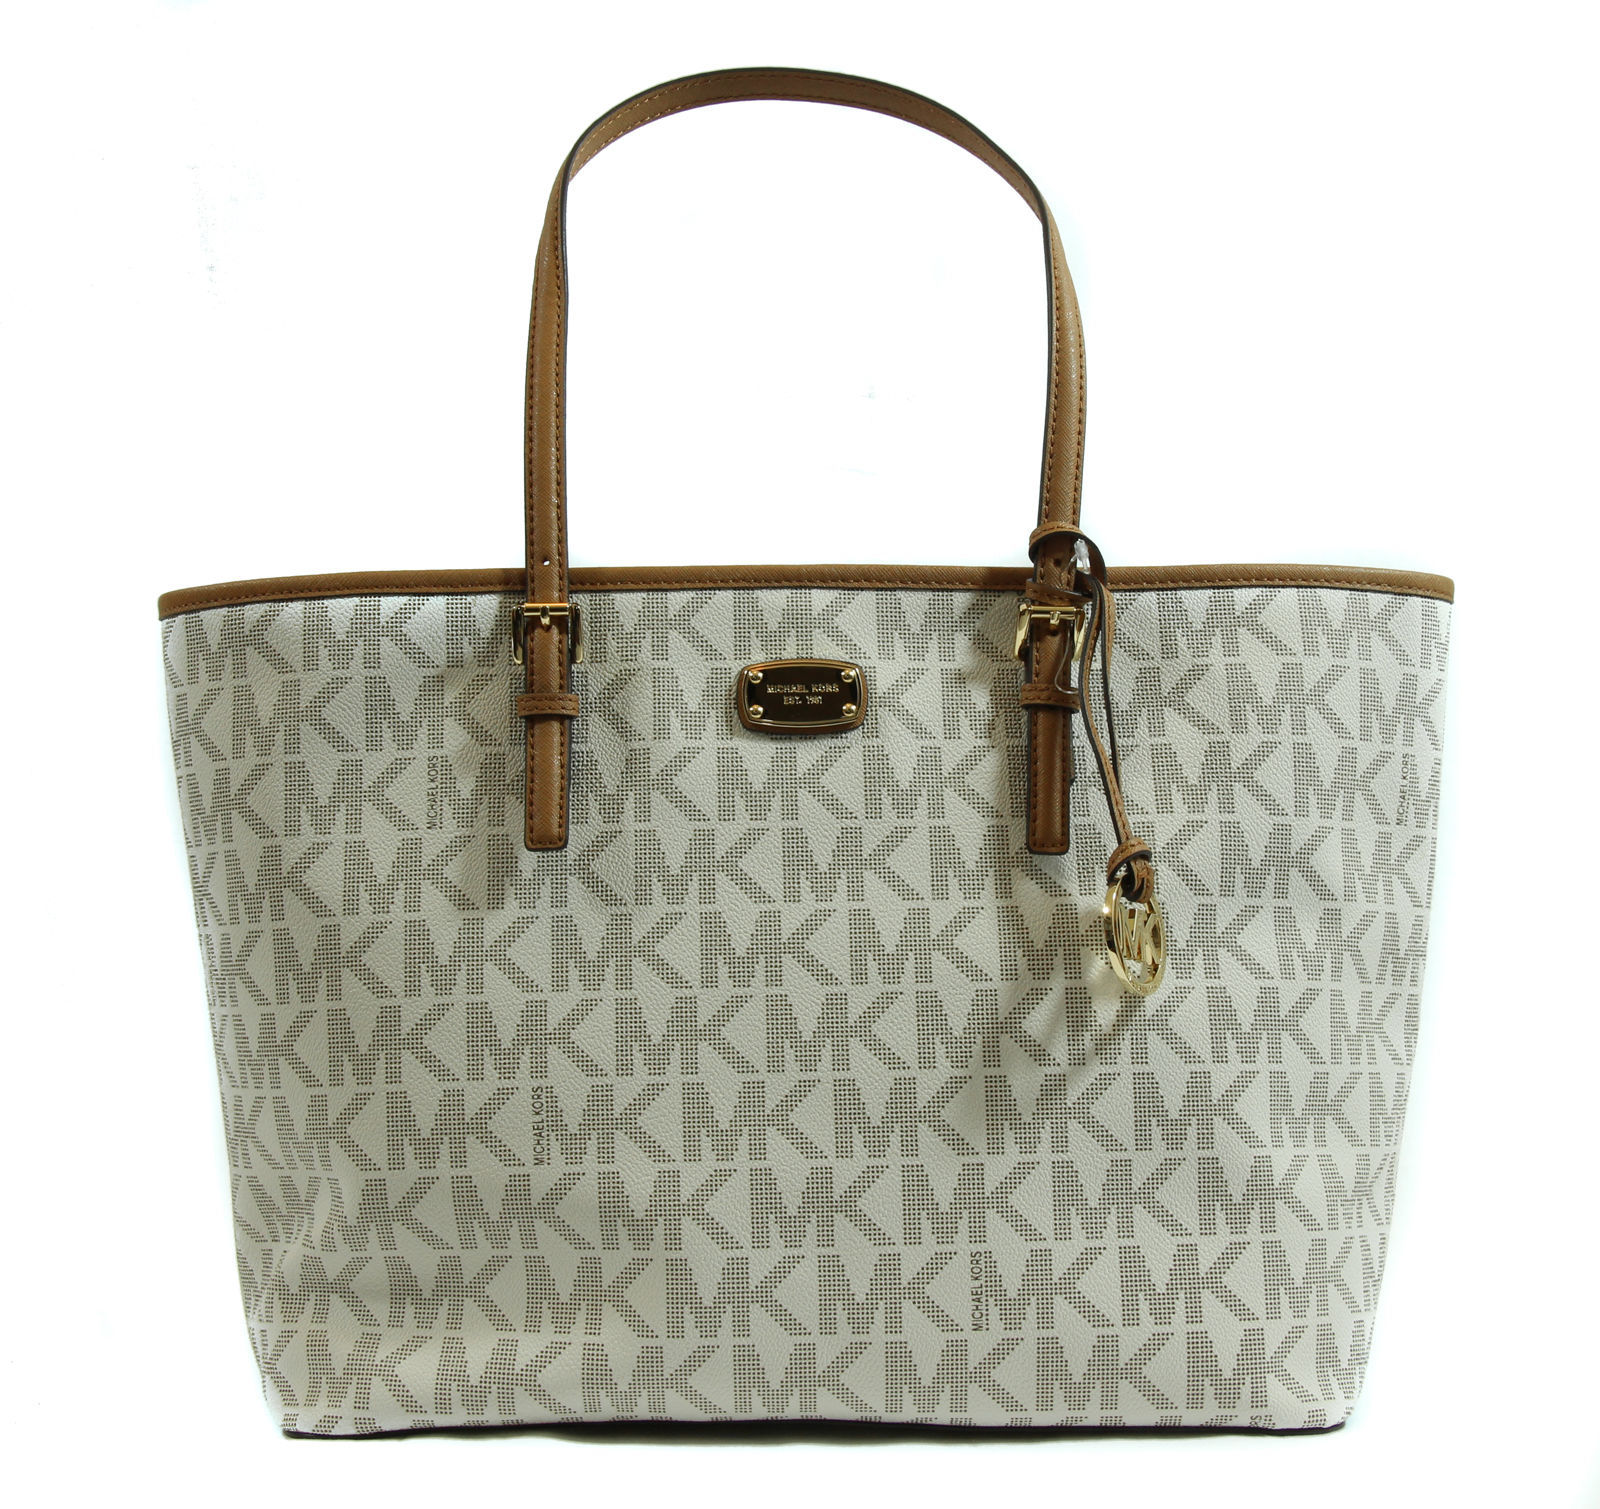 fdf1846eddf6 S l1600. S l1600. NWT MICHAEL Michael Kors Jet Set Travel Large Carryall Tote  Bag